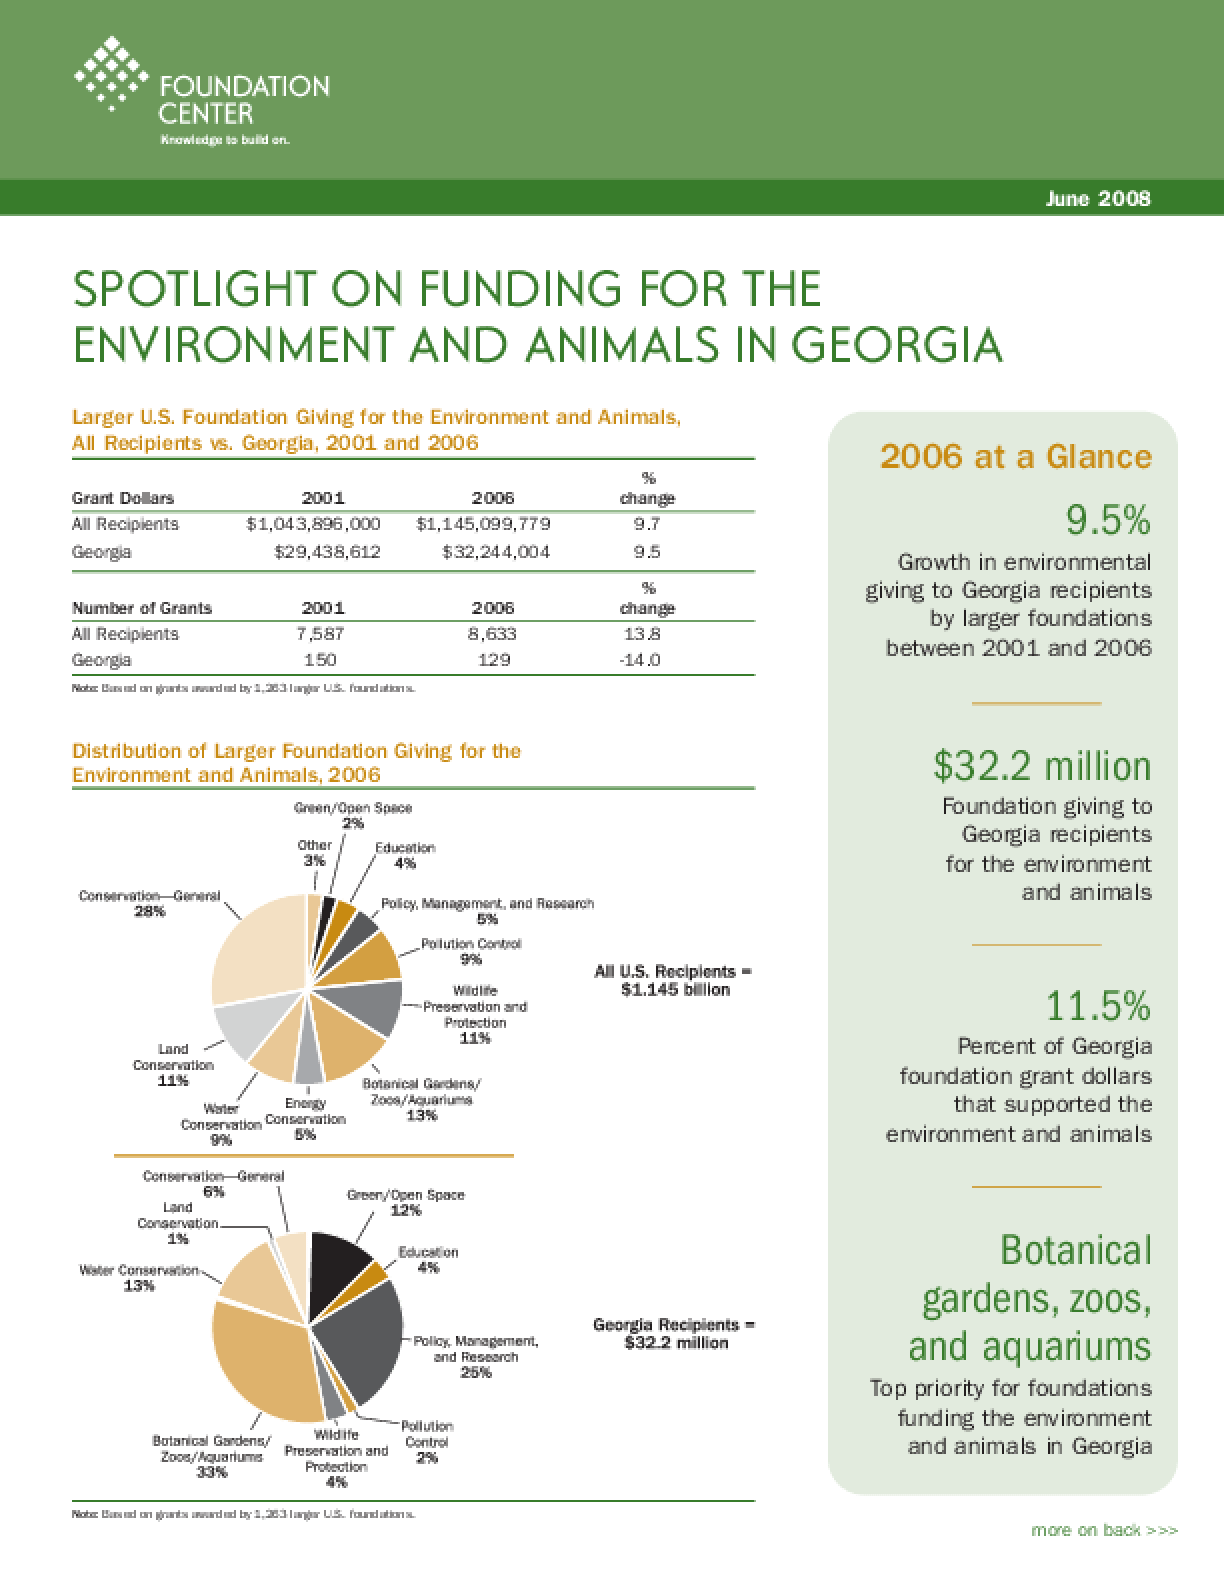 Spotlight on Funding for the Environment and Animals in Georgia